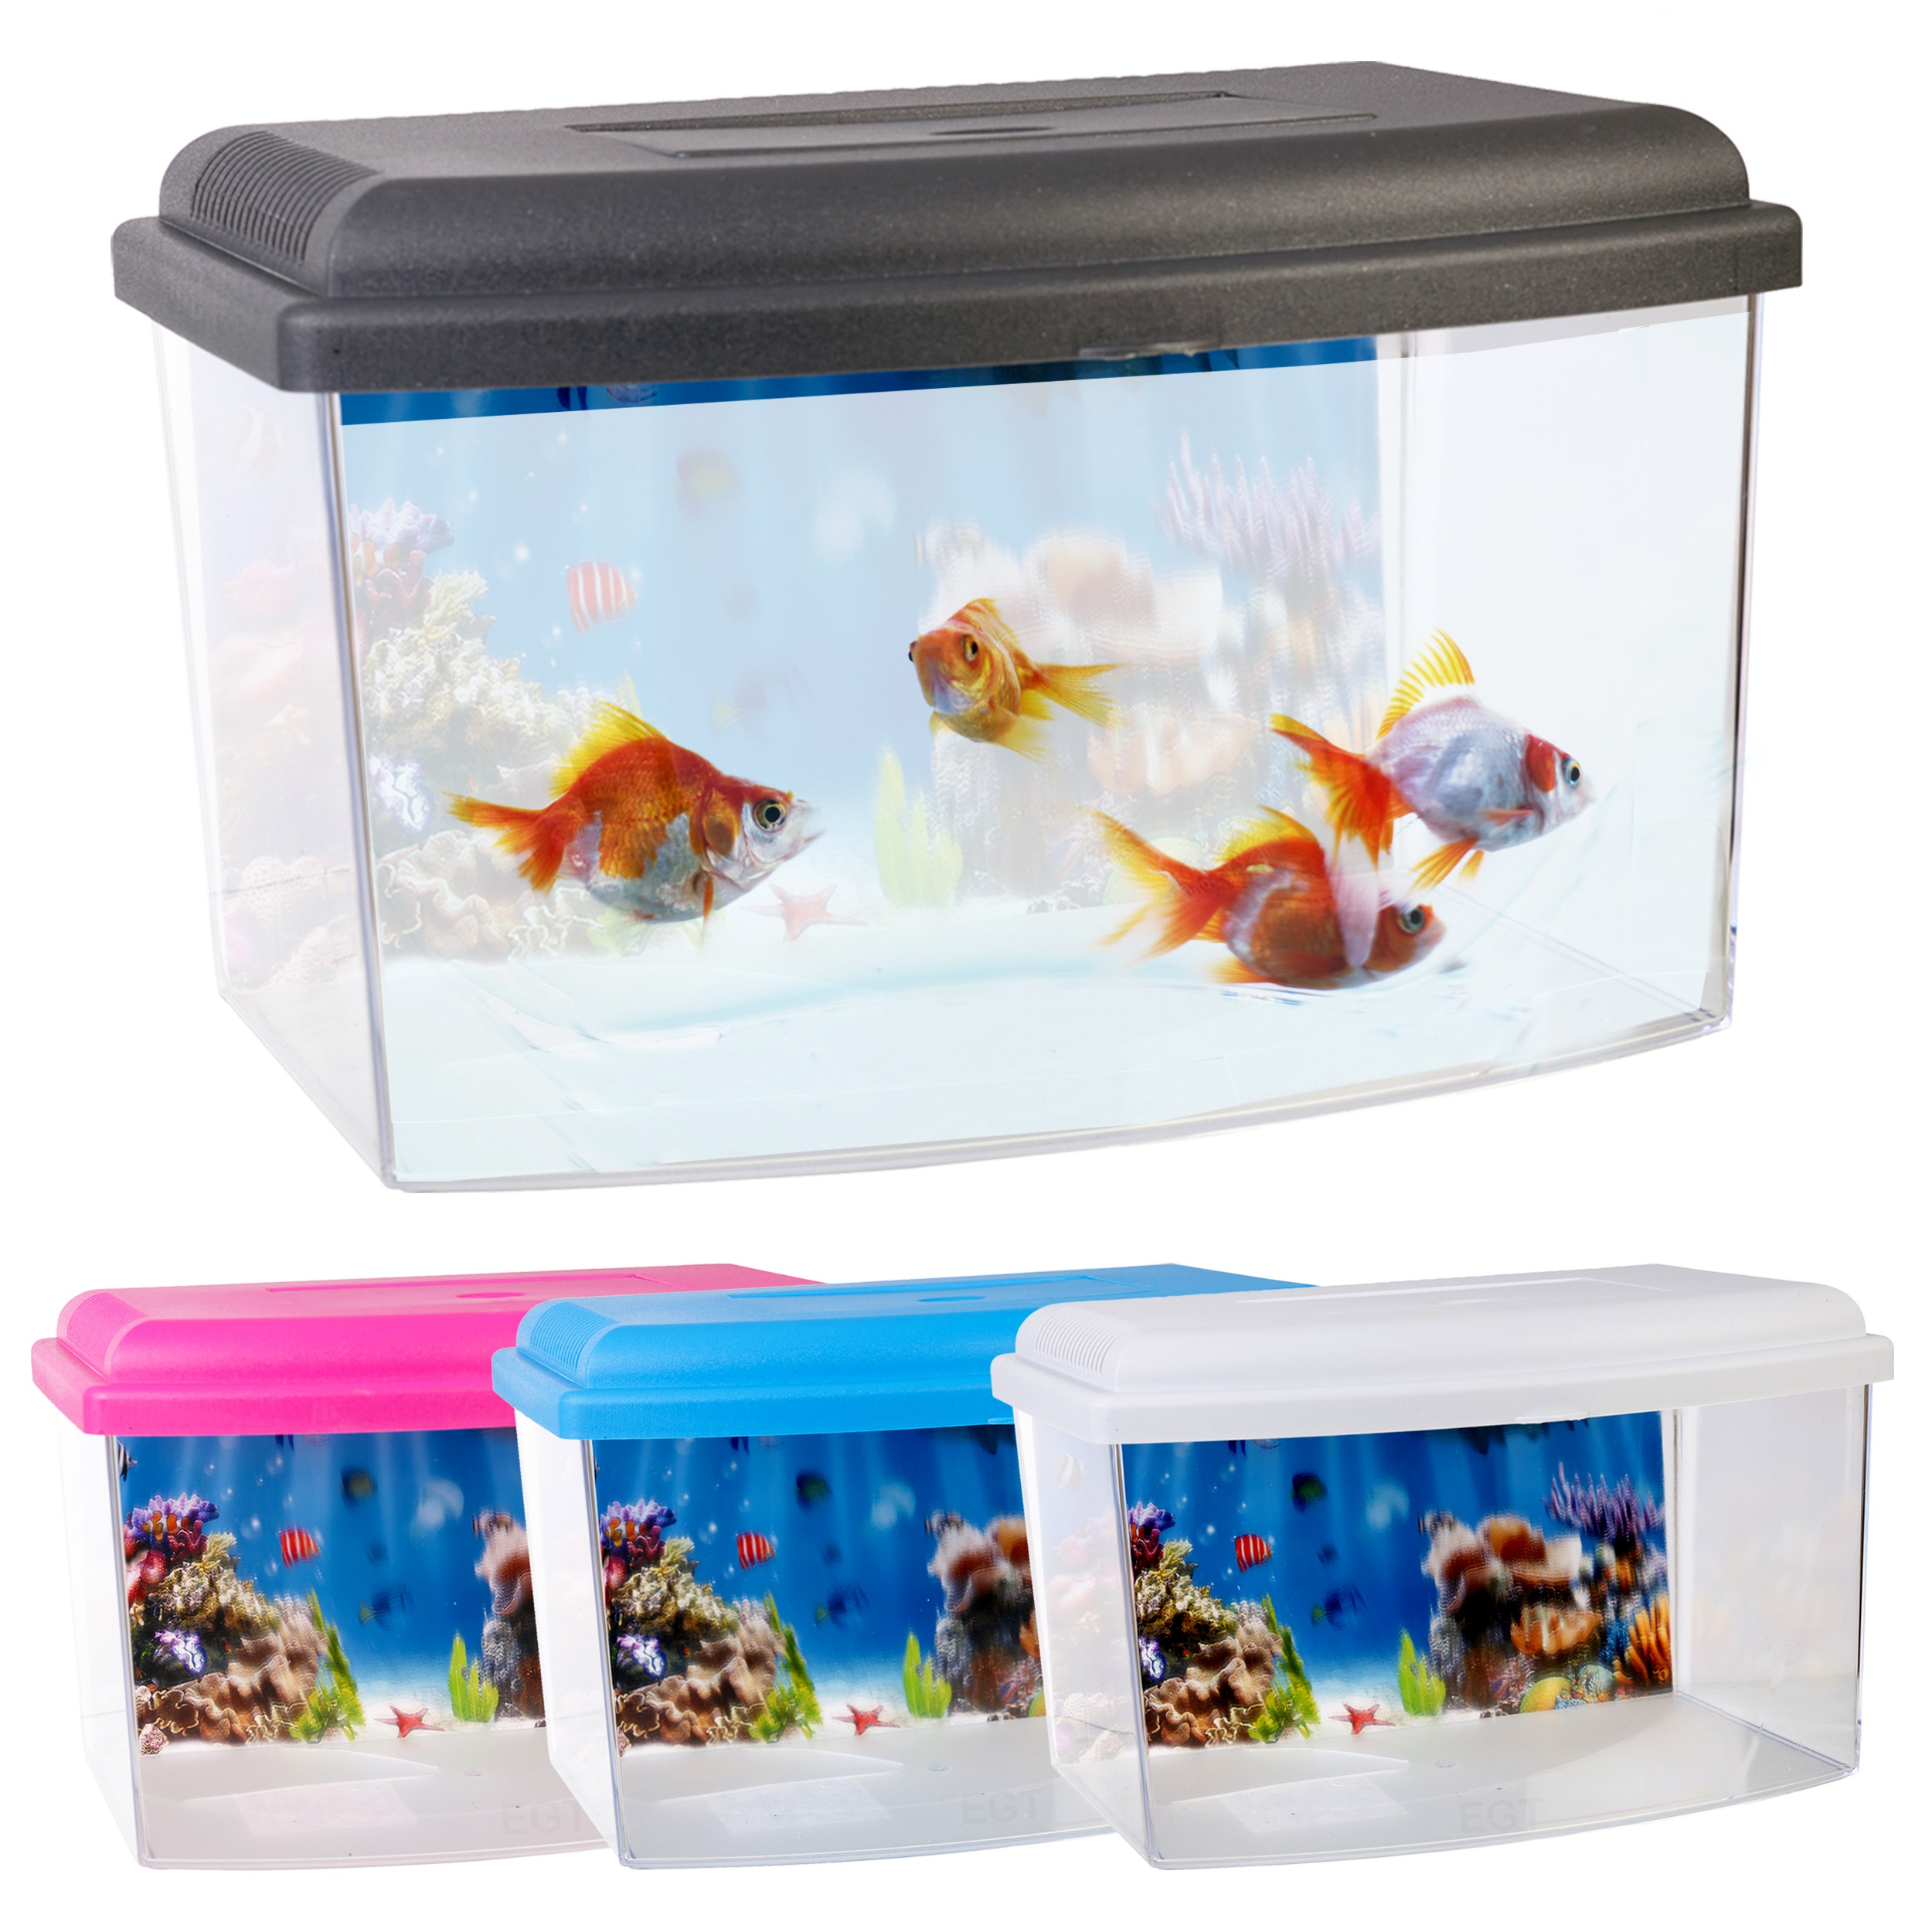 Aquarium fish tank cyprus - Item Specifics